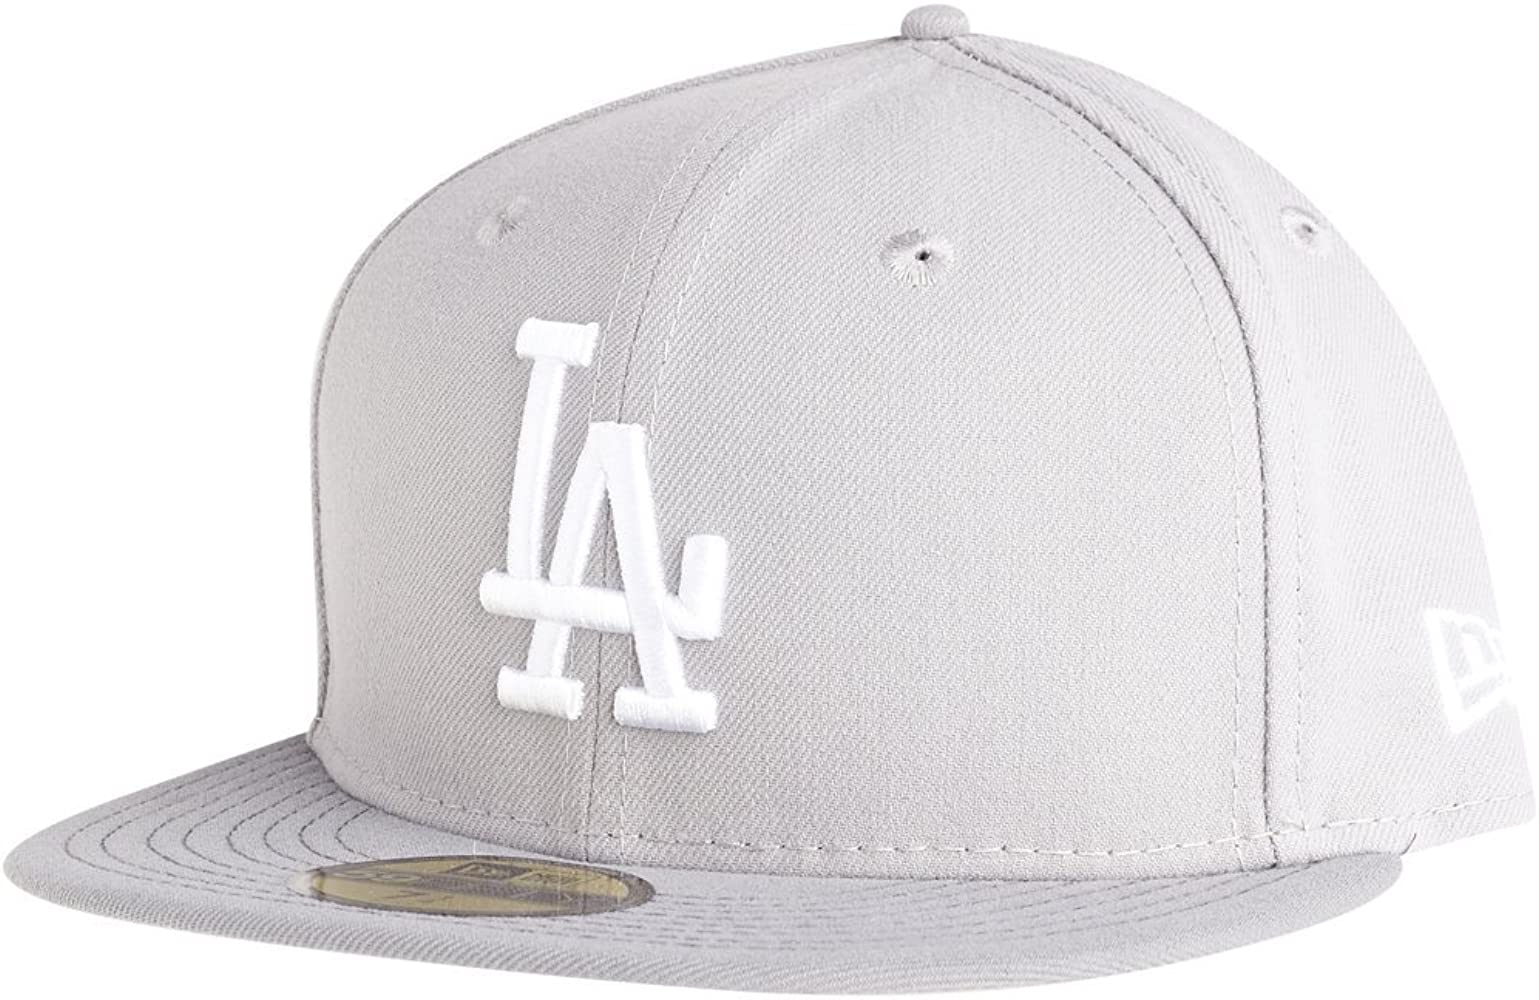 Los Angeles Dodgers New Era – Gorra 9 FIFTY – MLB – 2 Tone – Grey ...